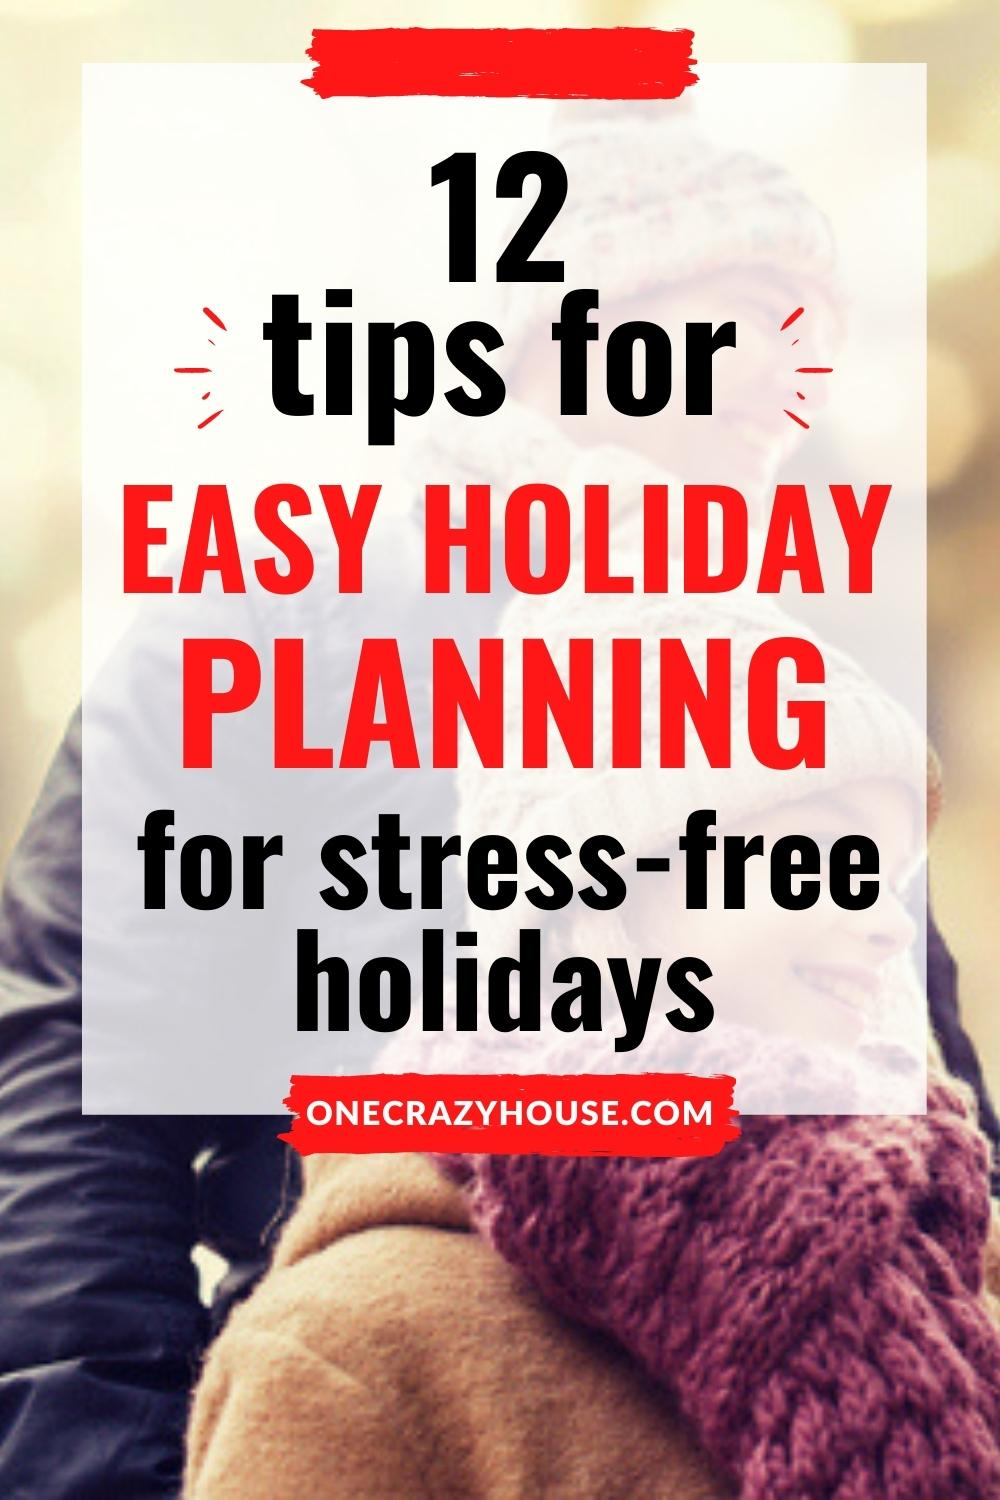 holiday planning tips for stress-free holidays